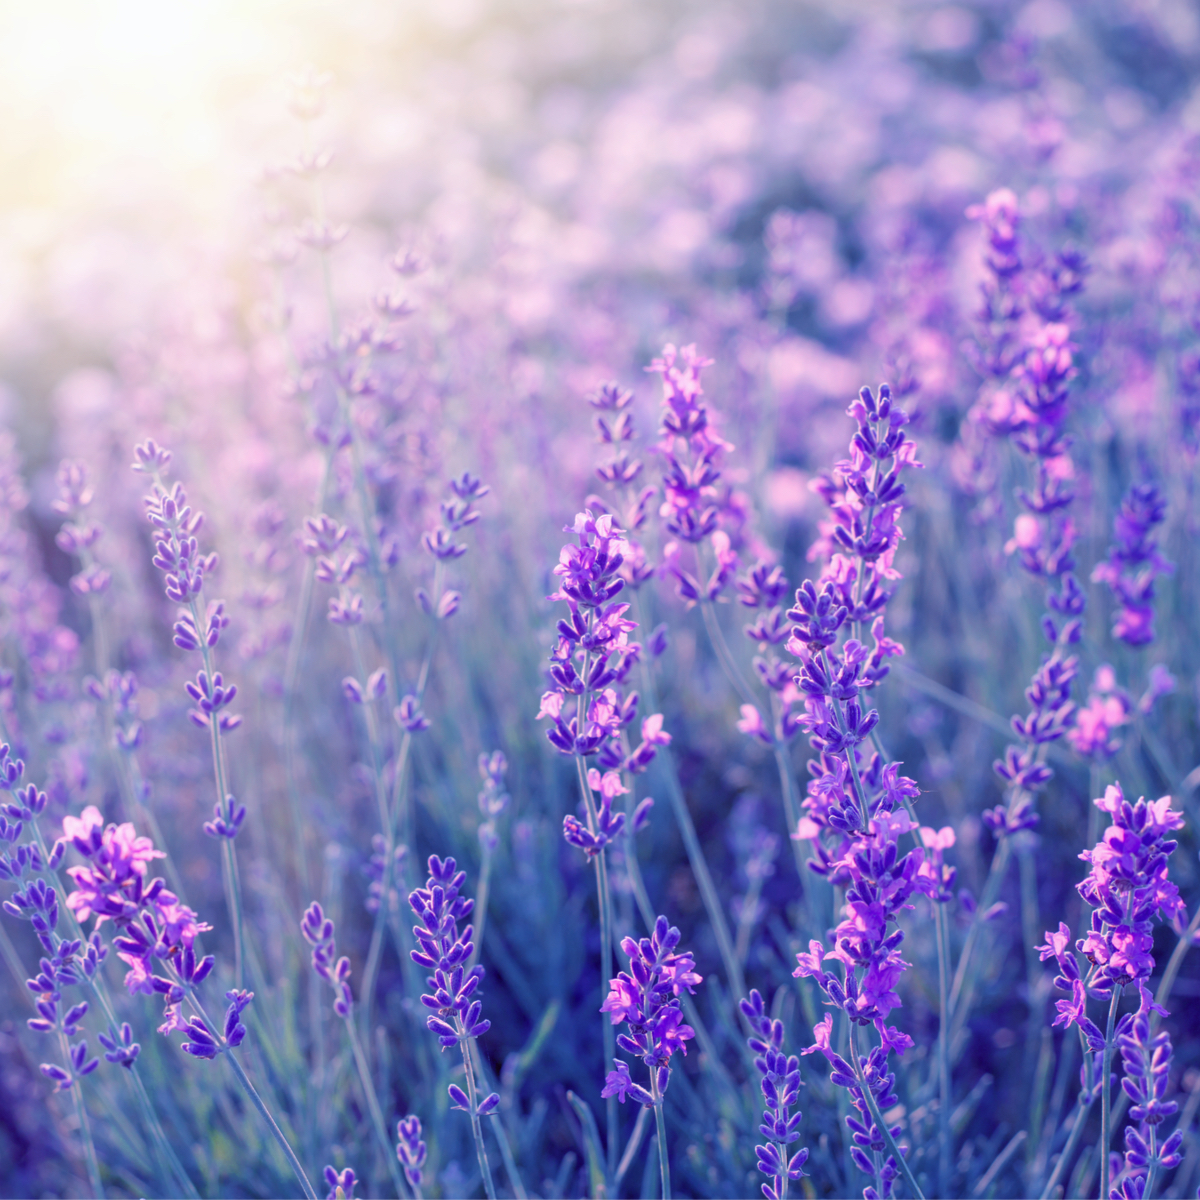 Try our luxury lavender skincare products